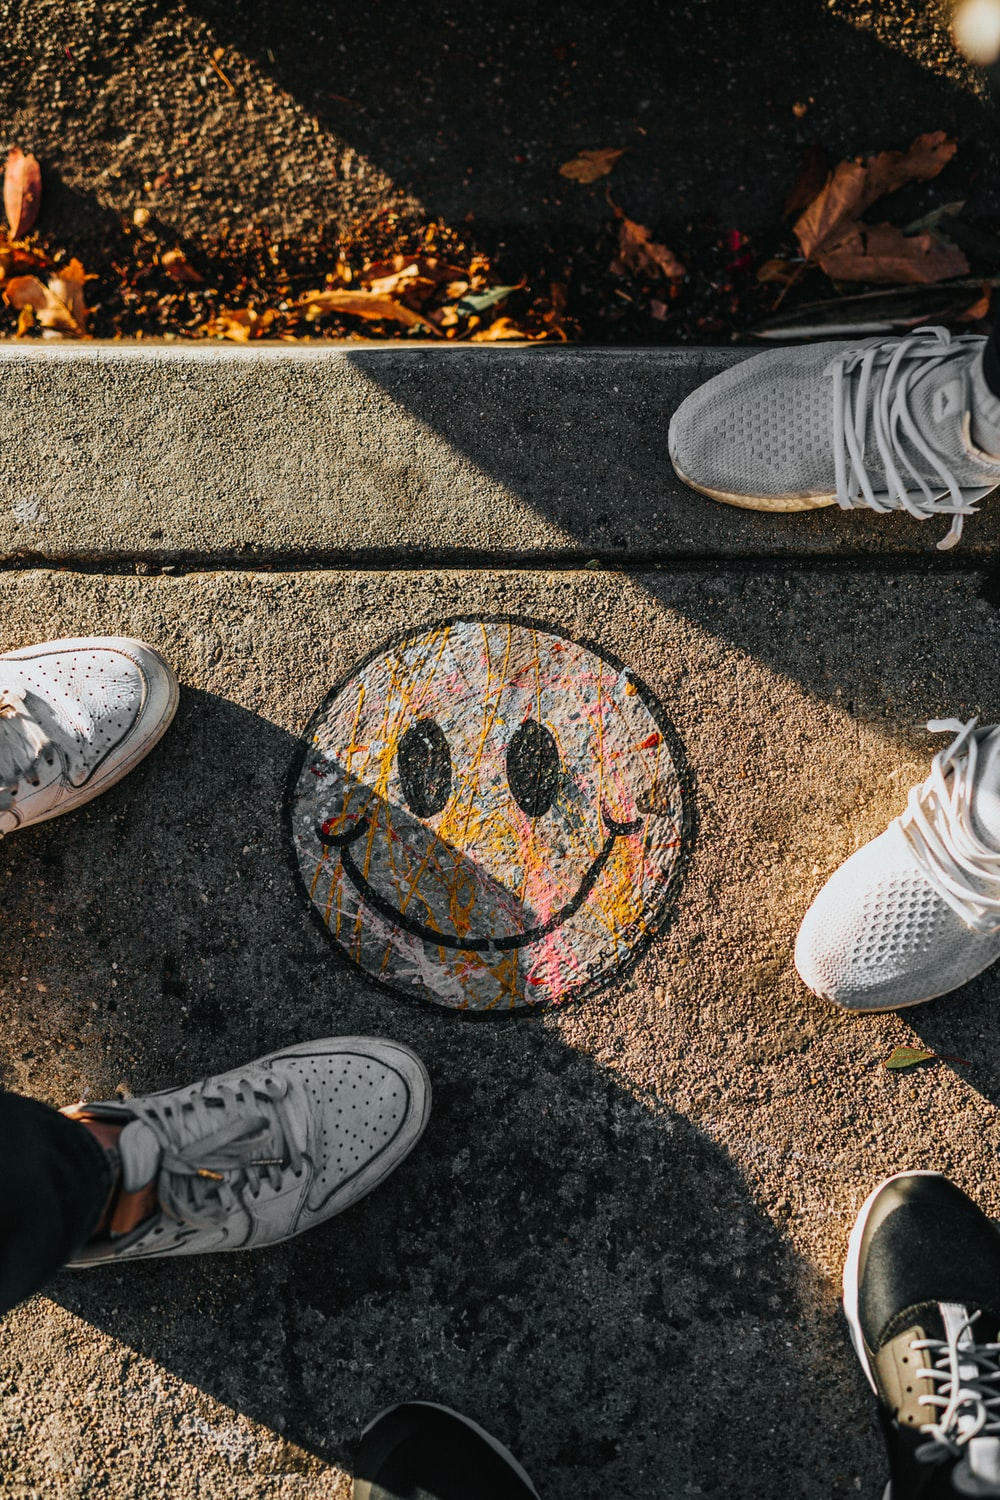 20+ Sneakers Pictures [HD]   Download Free Images on Unsplash